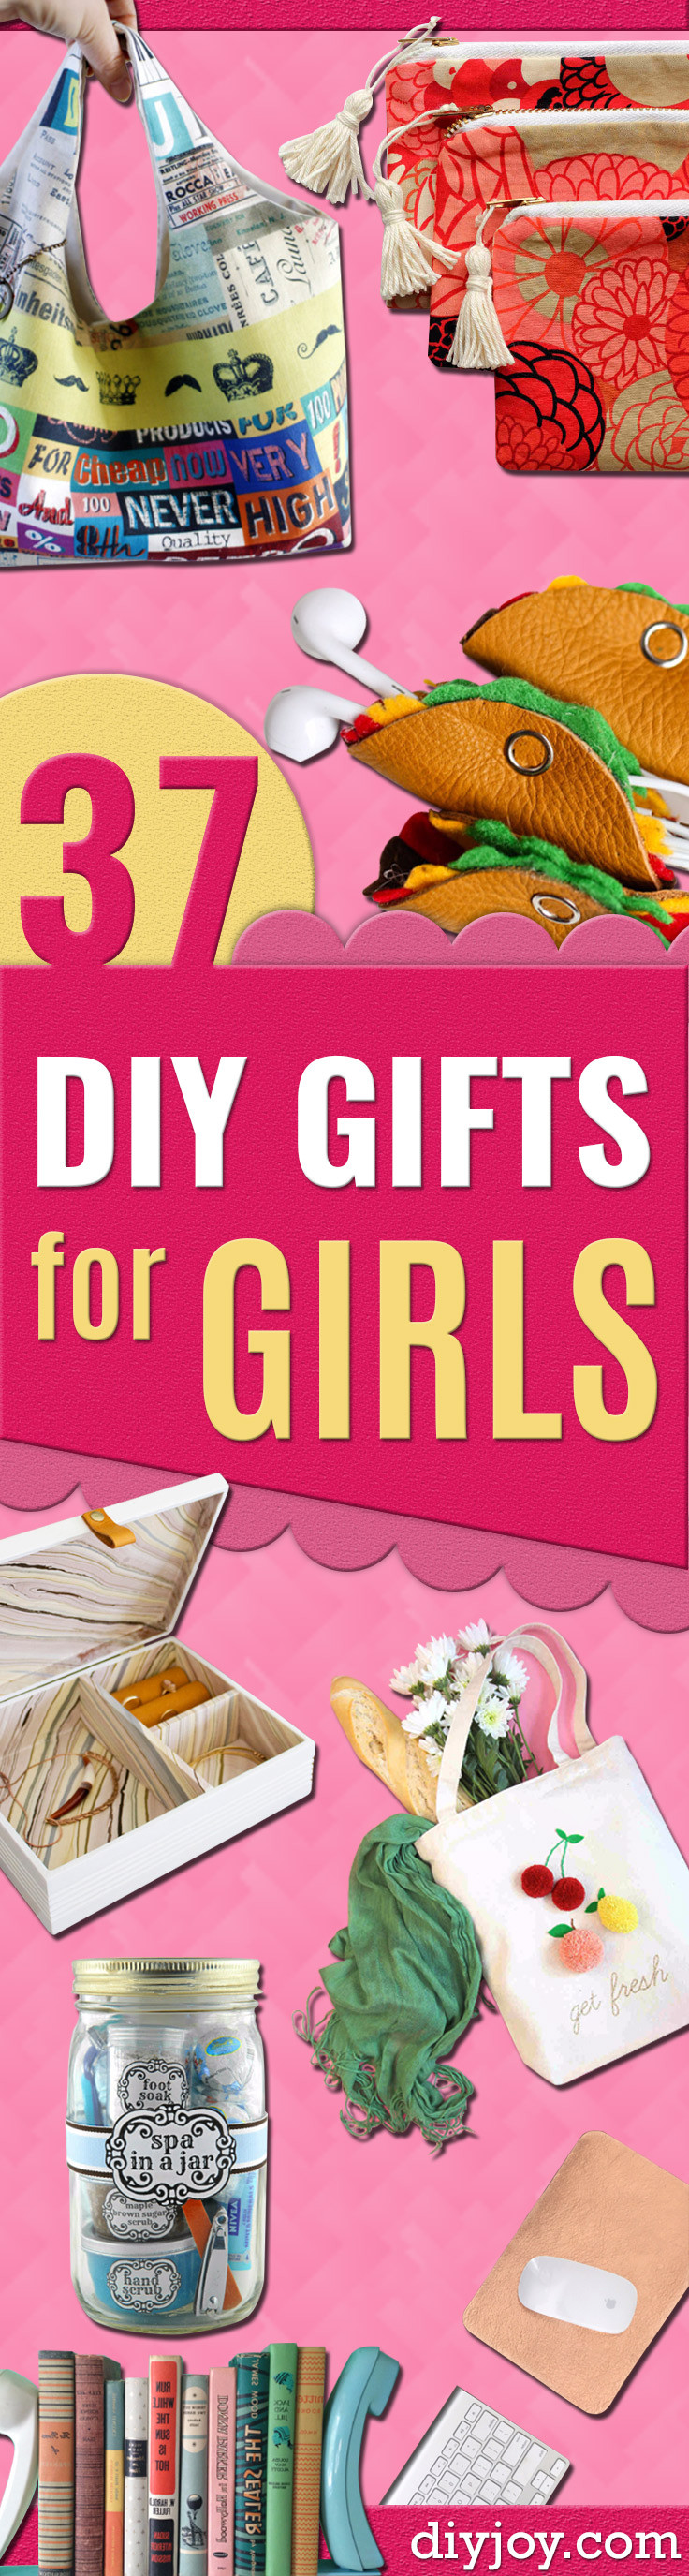 Best ideas about Cheap Gift Ideas For Girls . Save or Pin 37 Best DIY Gifts for Girls Now.